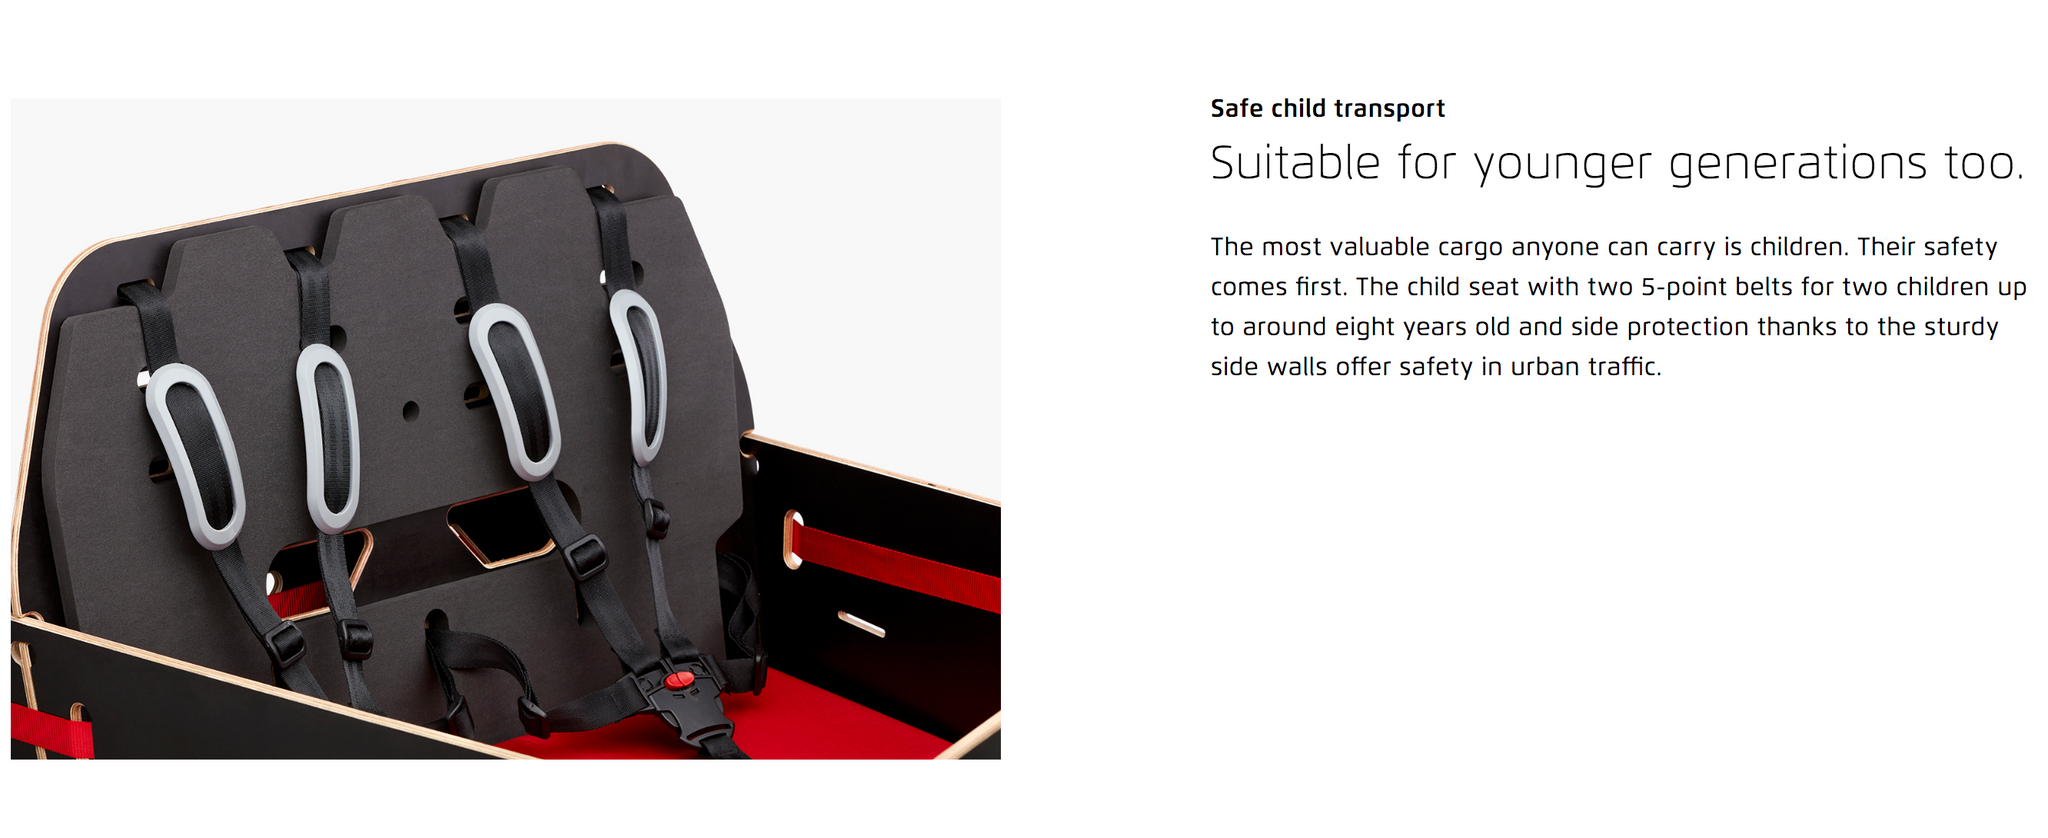 Safe child transport  Suitable for younger generations too. The most valuable cargo anyone can carry is children. Their safety comes first. The child seat with two 5-point belts for two children up to around eight years old and side protection thanks to the sturdy side walls offer safety in urban traffic.